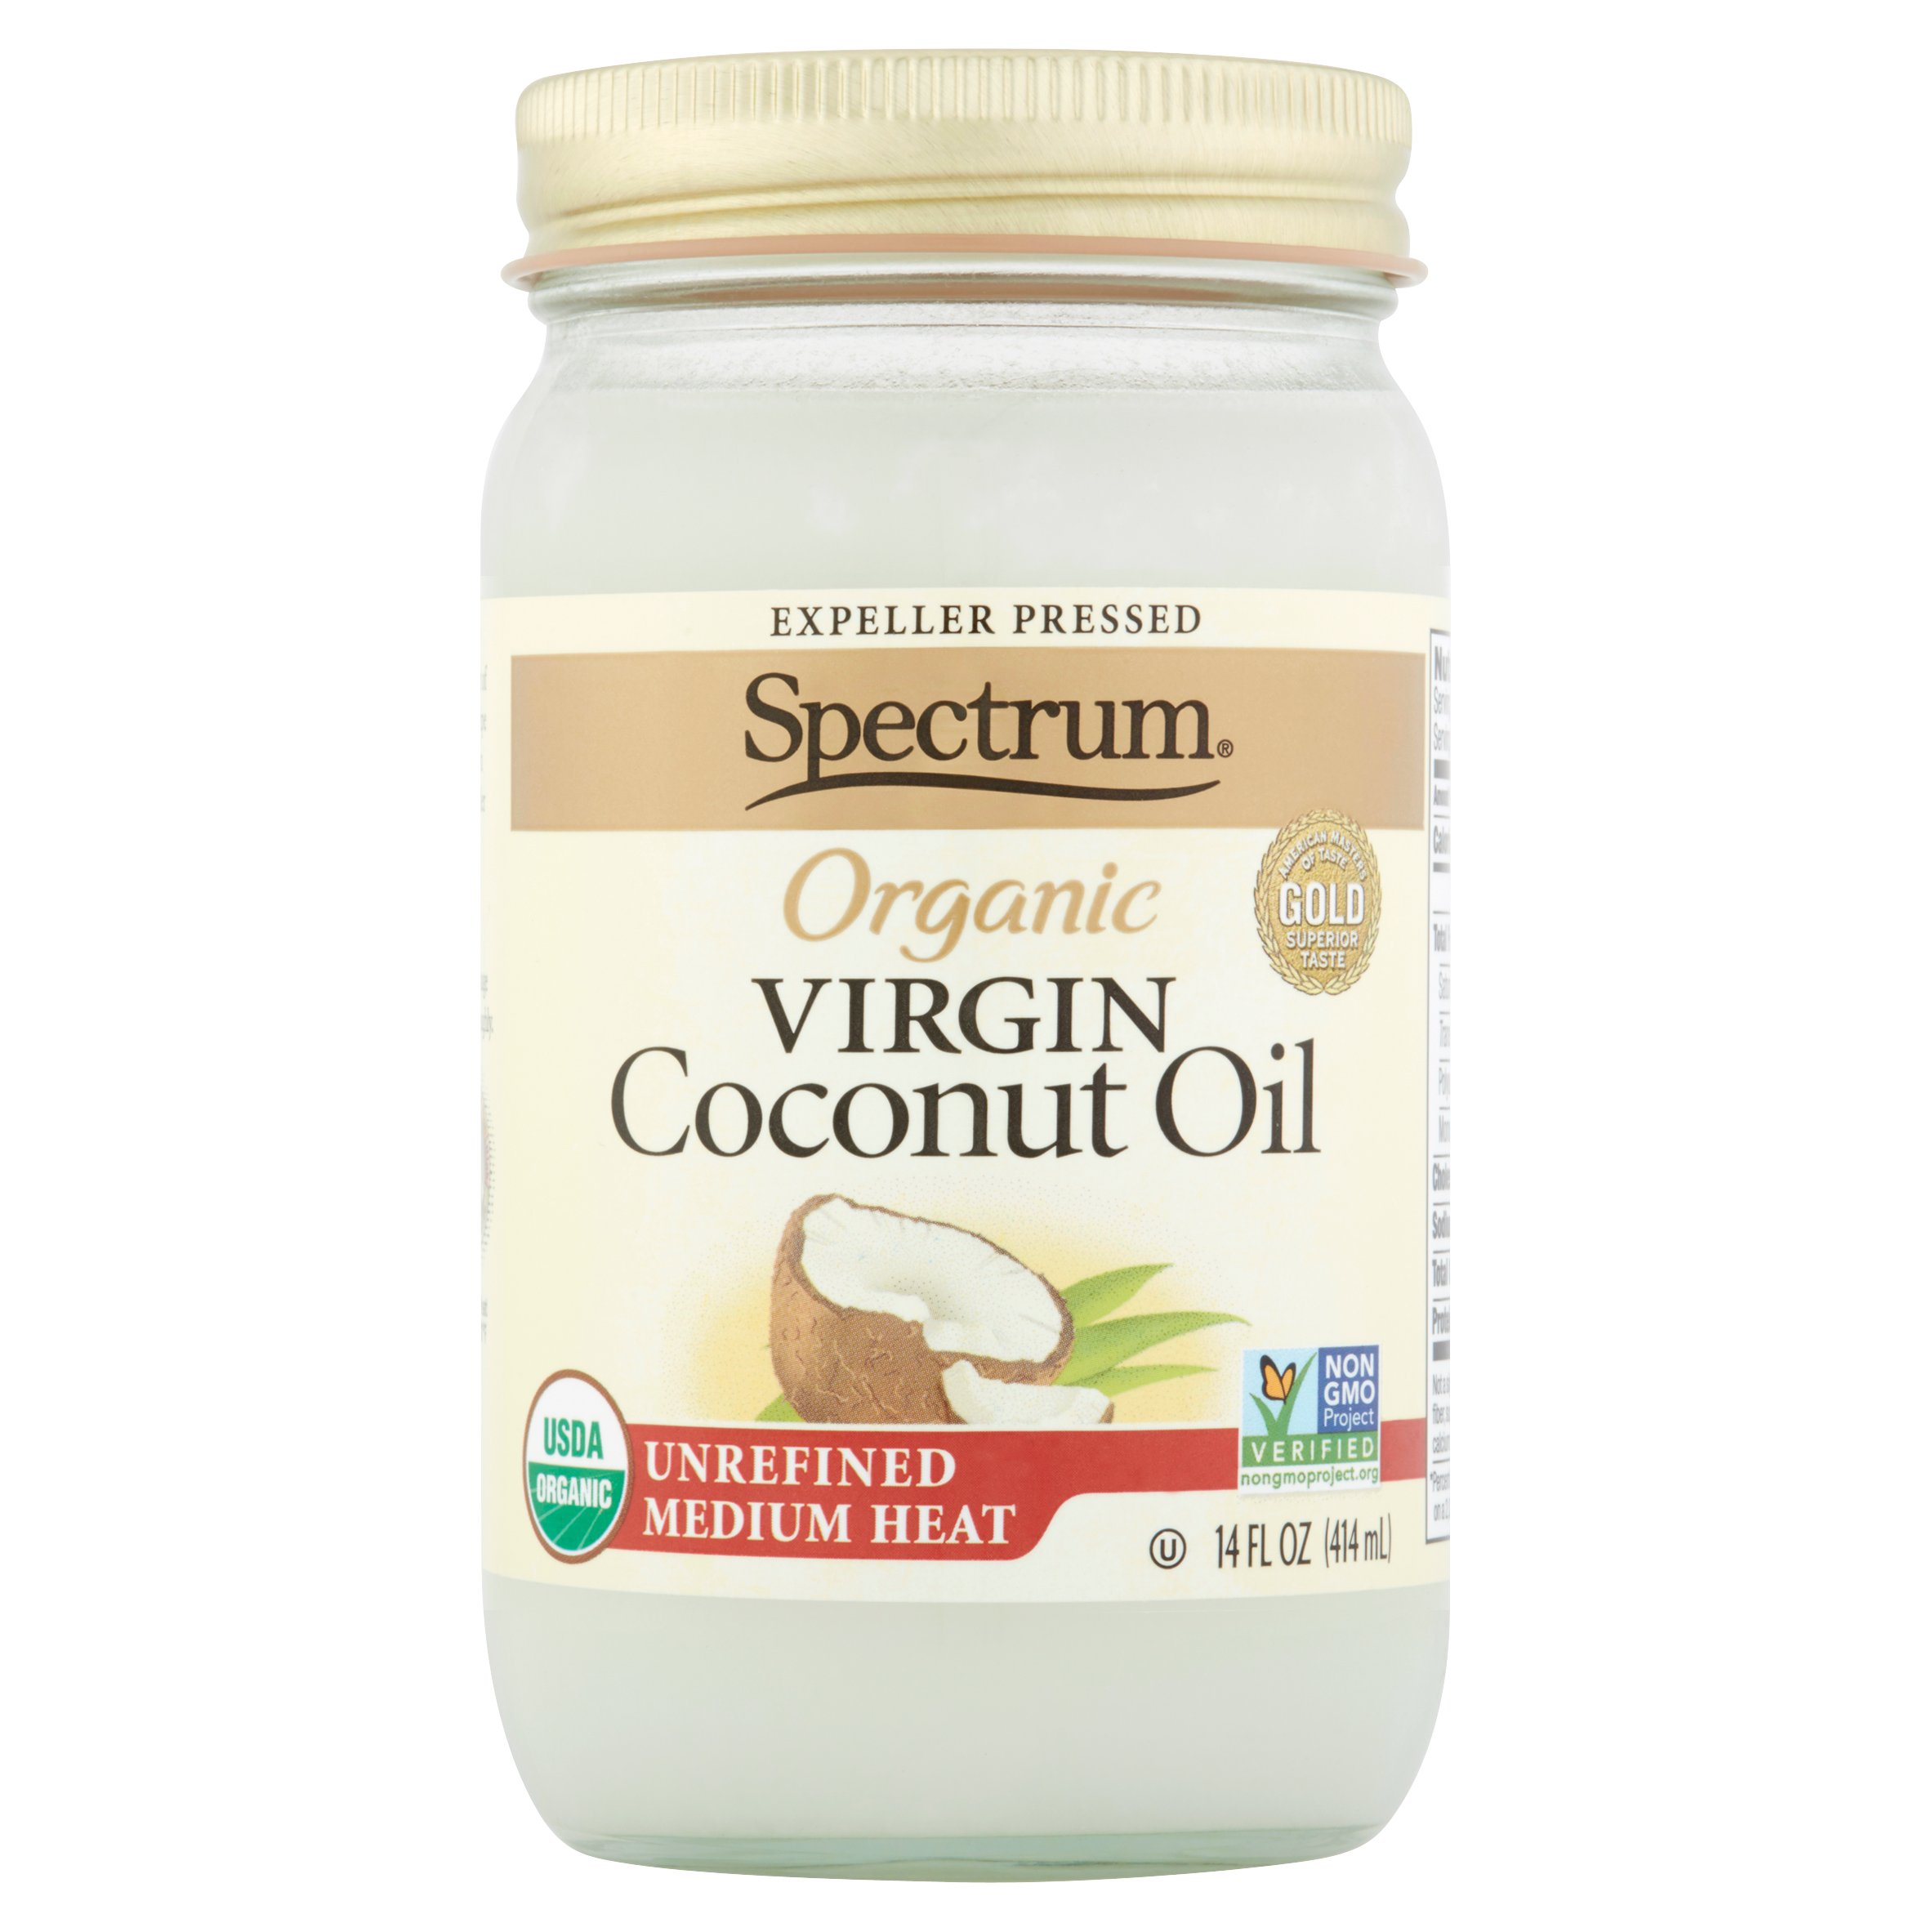 Spectrum Organic Virgin Coconut Oil, 14 fl oz